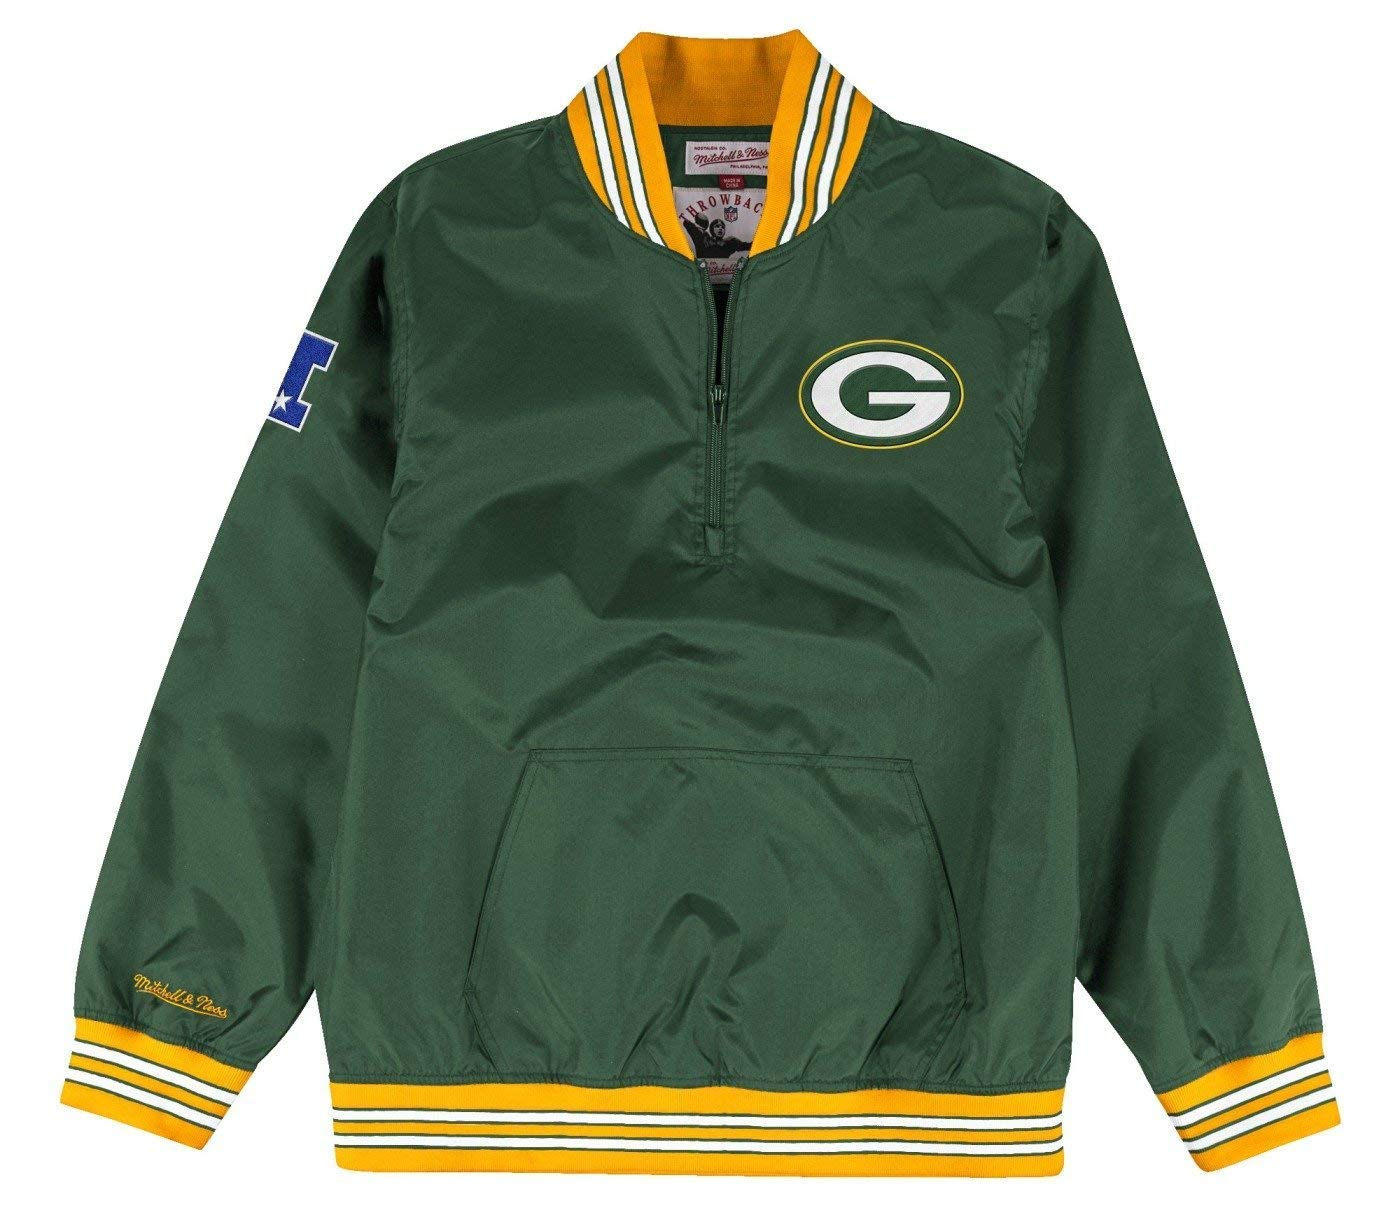 reputable site aaf1d 51eec Green Bay Packers Mitchell & Ness NFL Men's